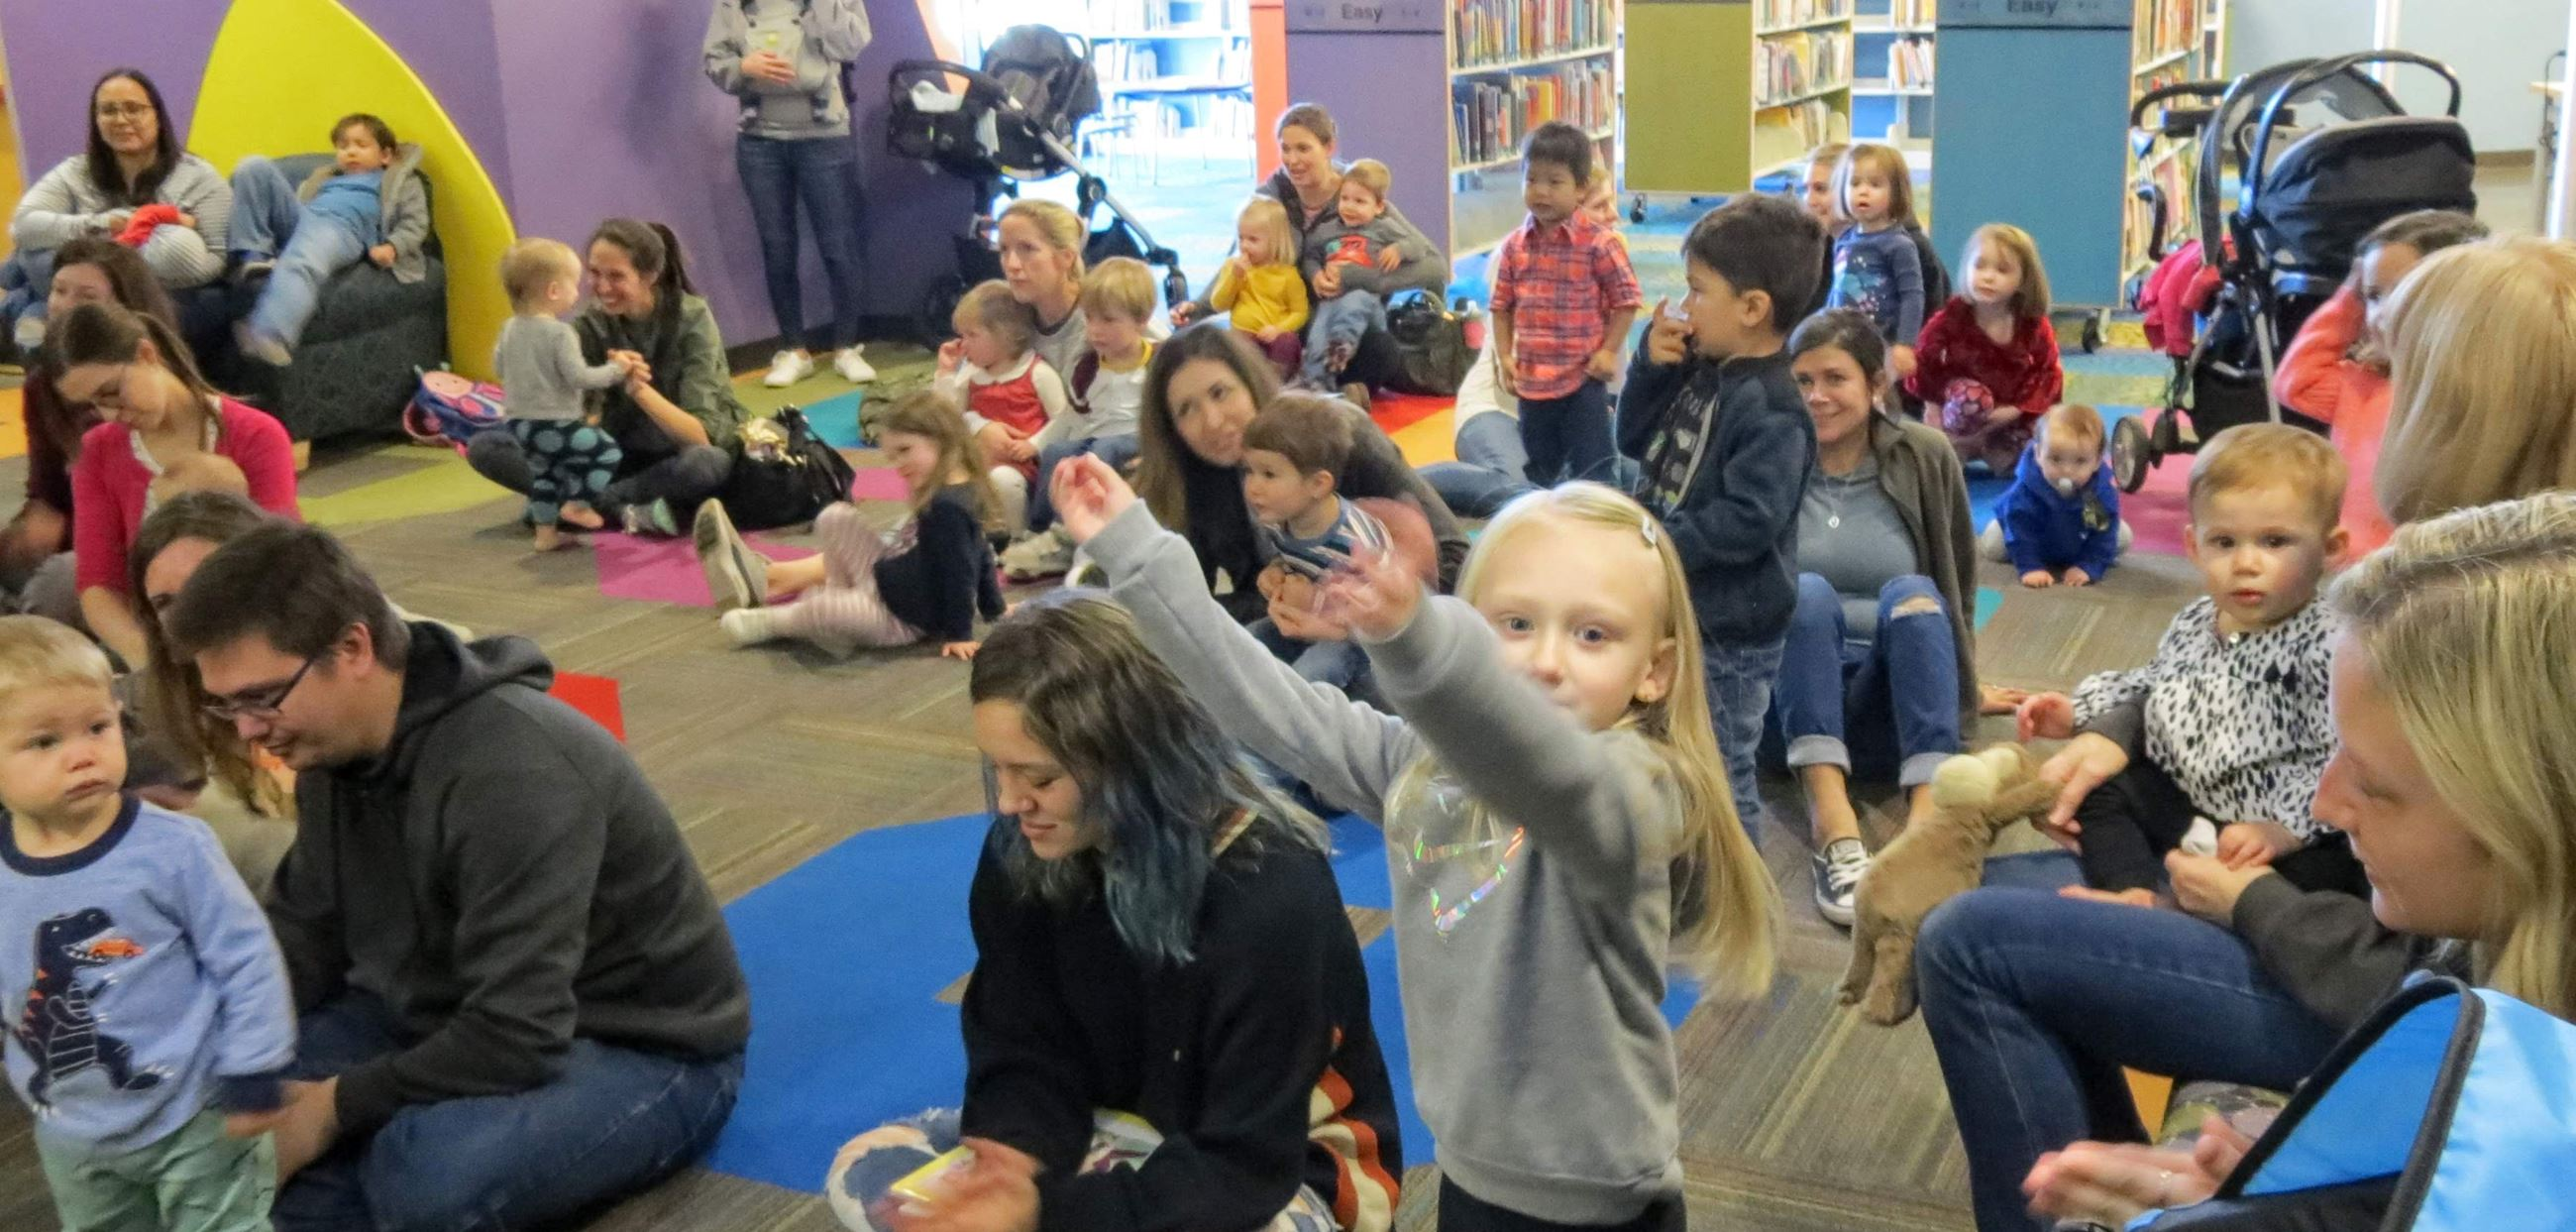 Children and parents at storytime